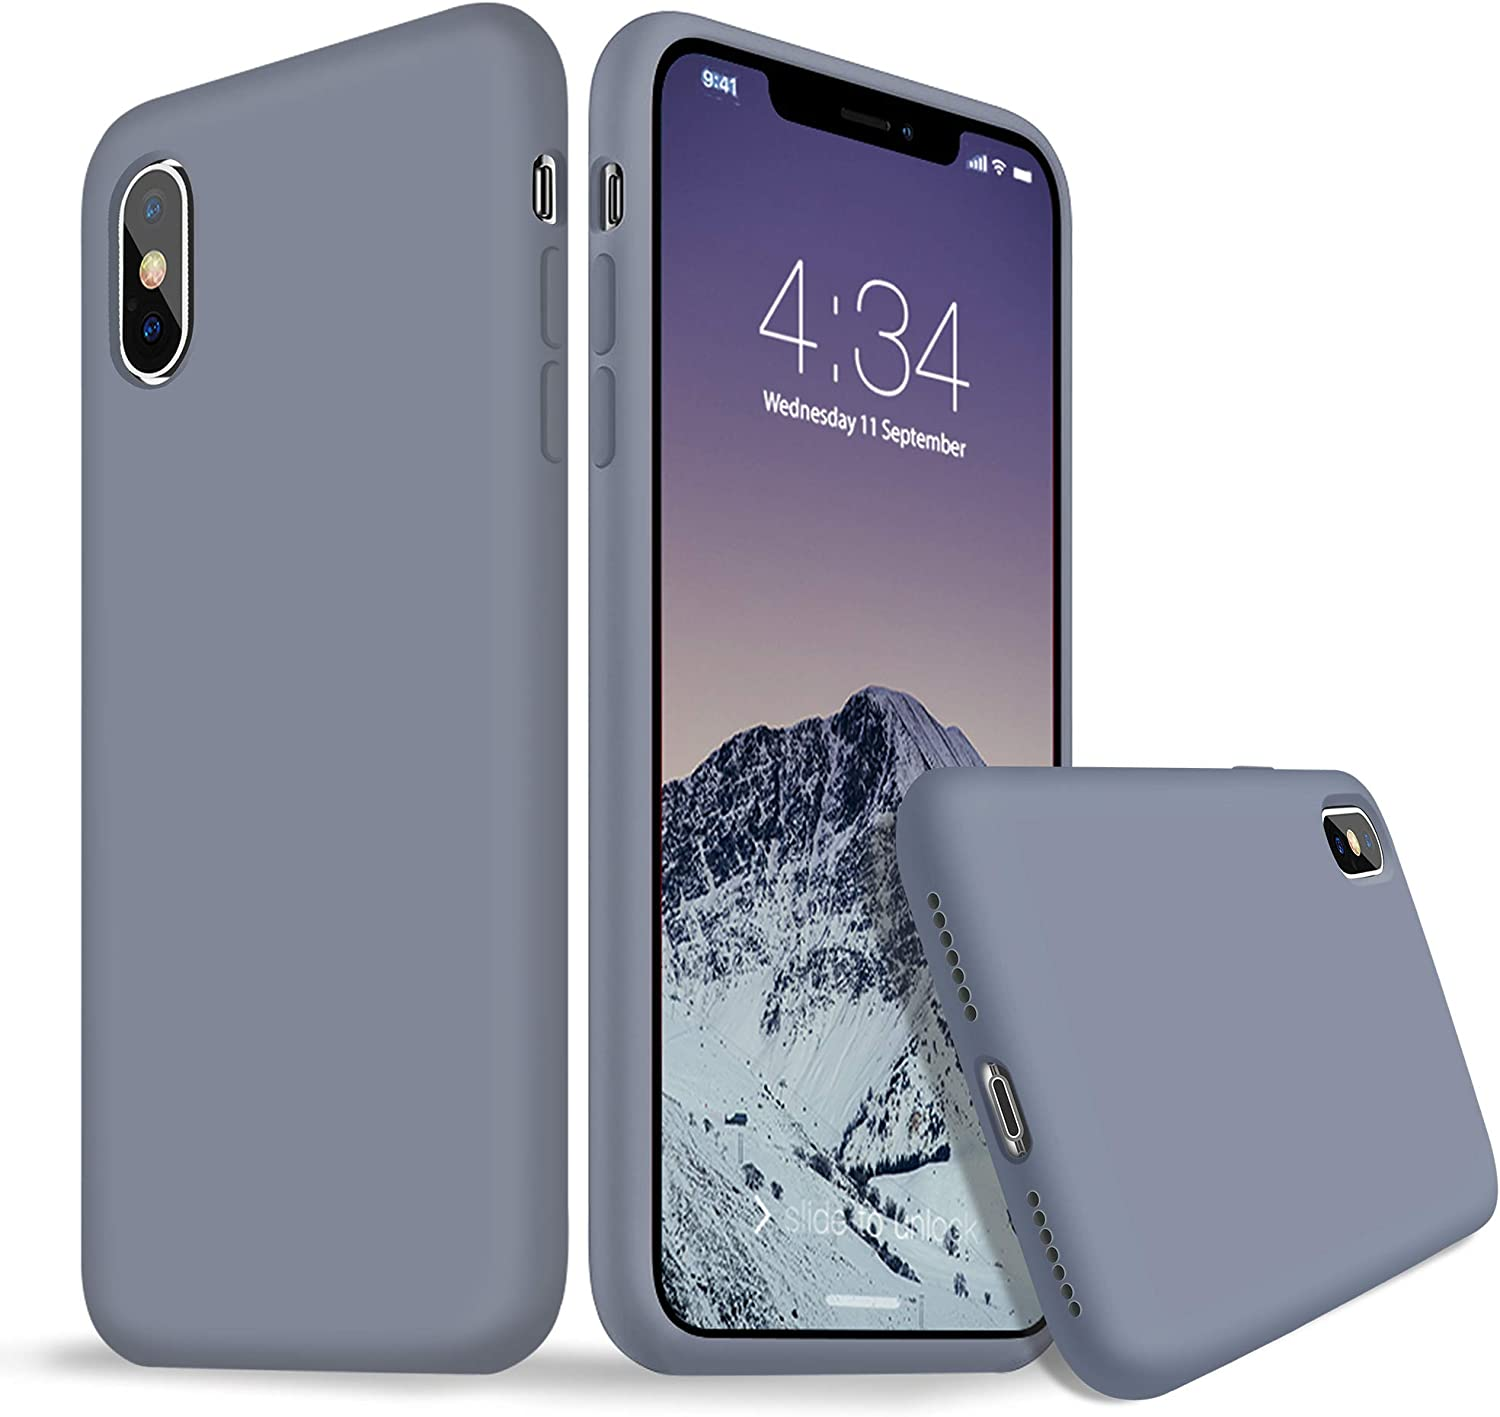 iPhone X Case, iPhone X Silicone Case, Xperg Slim Liquid Silicone Gel Rubber Shockproof Case Soft Microfiber Cloth Lining Cushion Compatible with Apple iPhone X XS 10 5.8 inch (Lavender Gray)